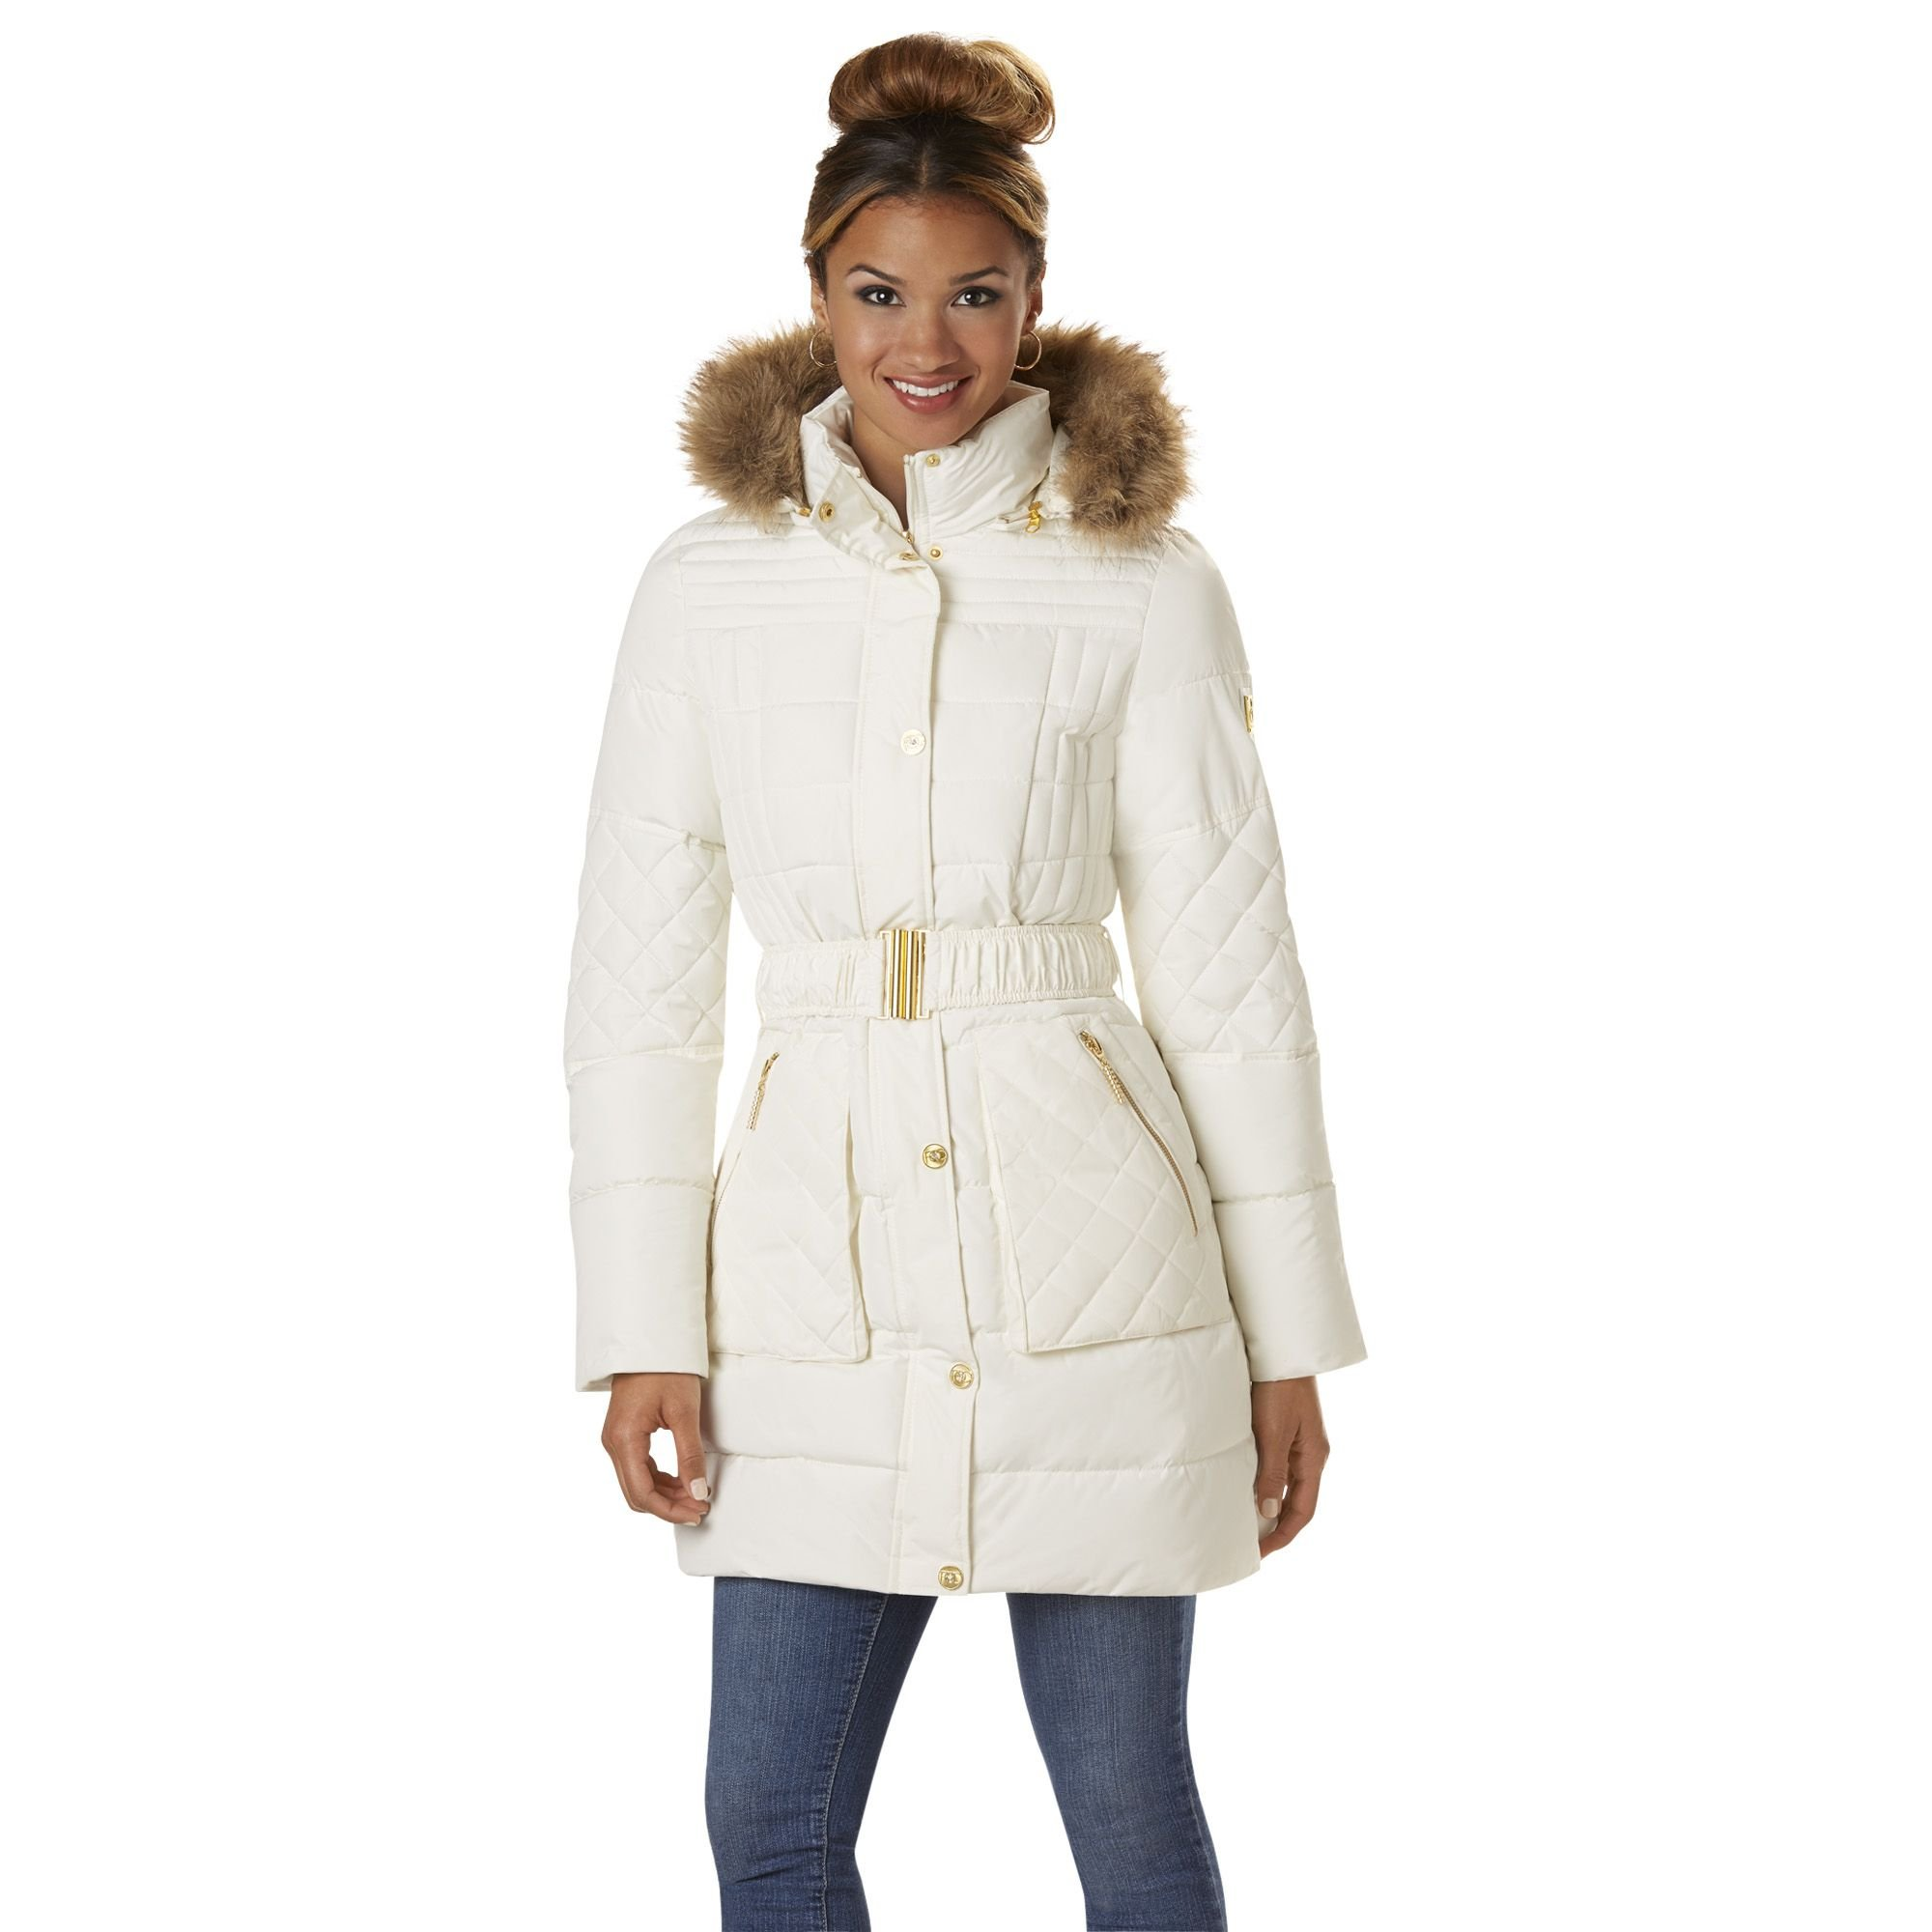 Rocawear Misses' Quilted Puffer w/ Belt